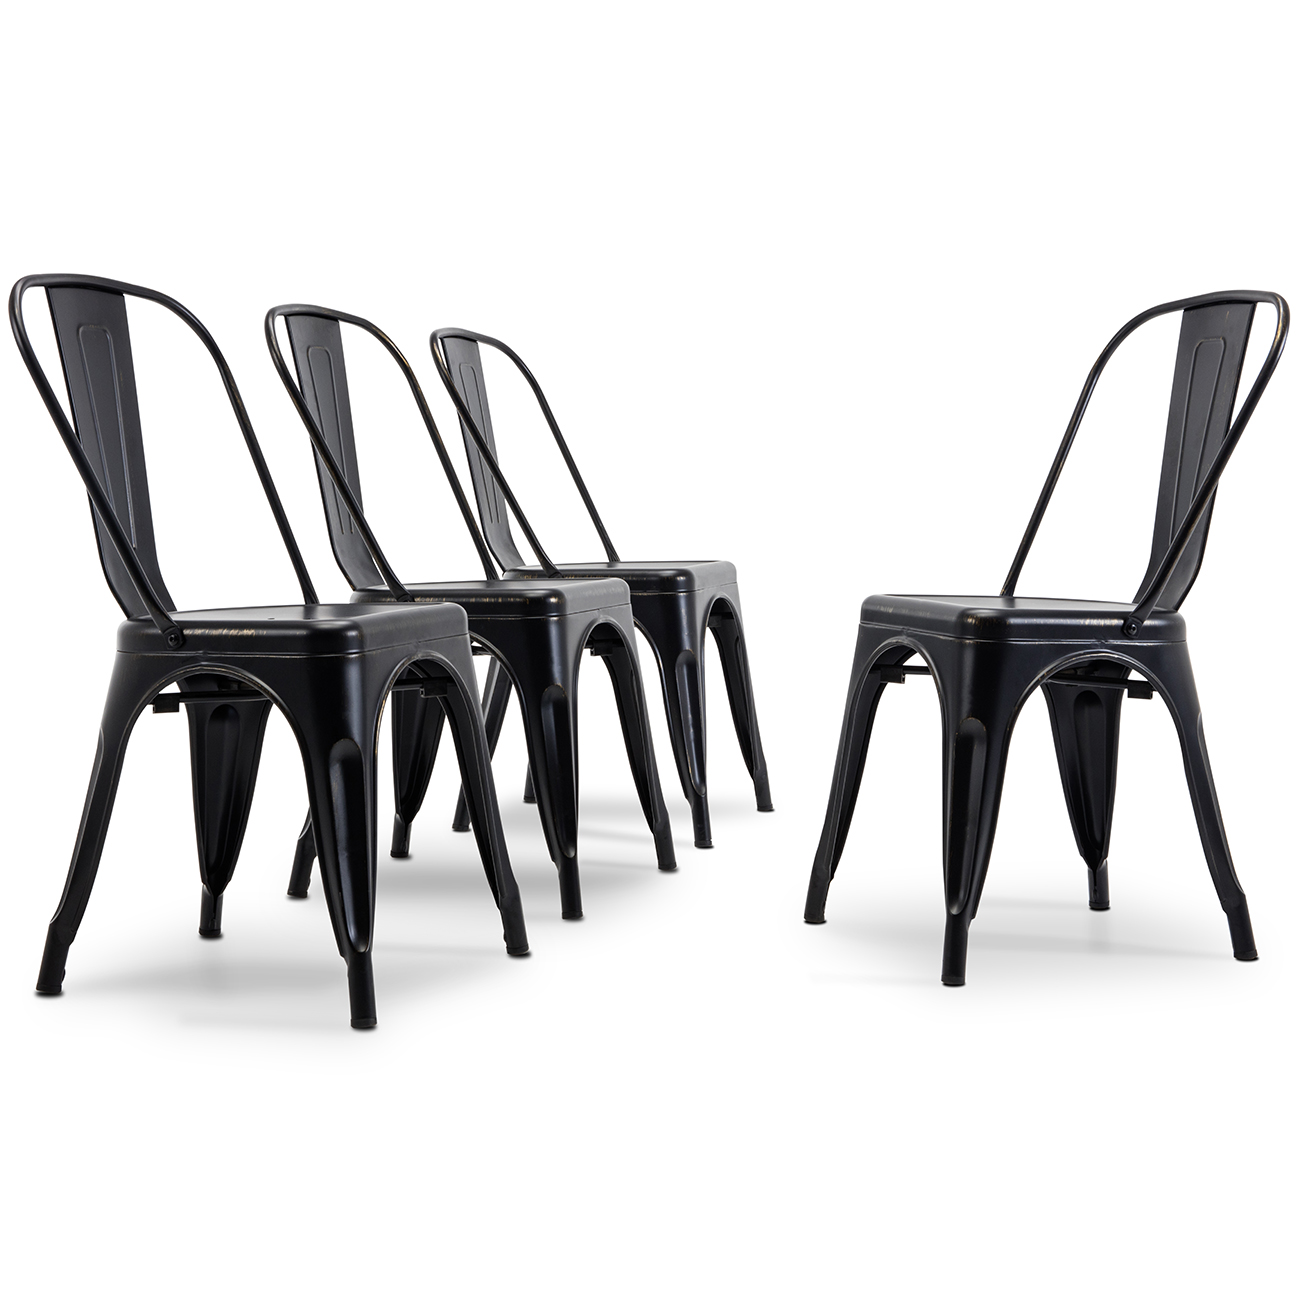 Vintage Looking Chairs: Set Of (4) Vintage Style Stackable Dining Chairs Steel